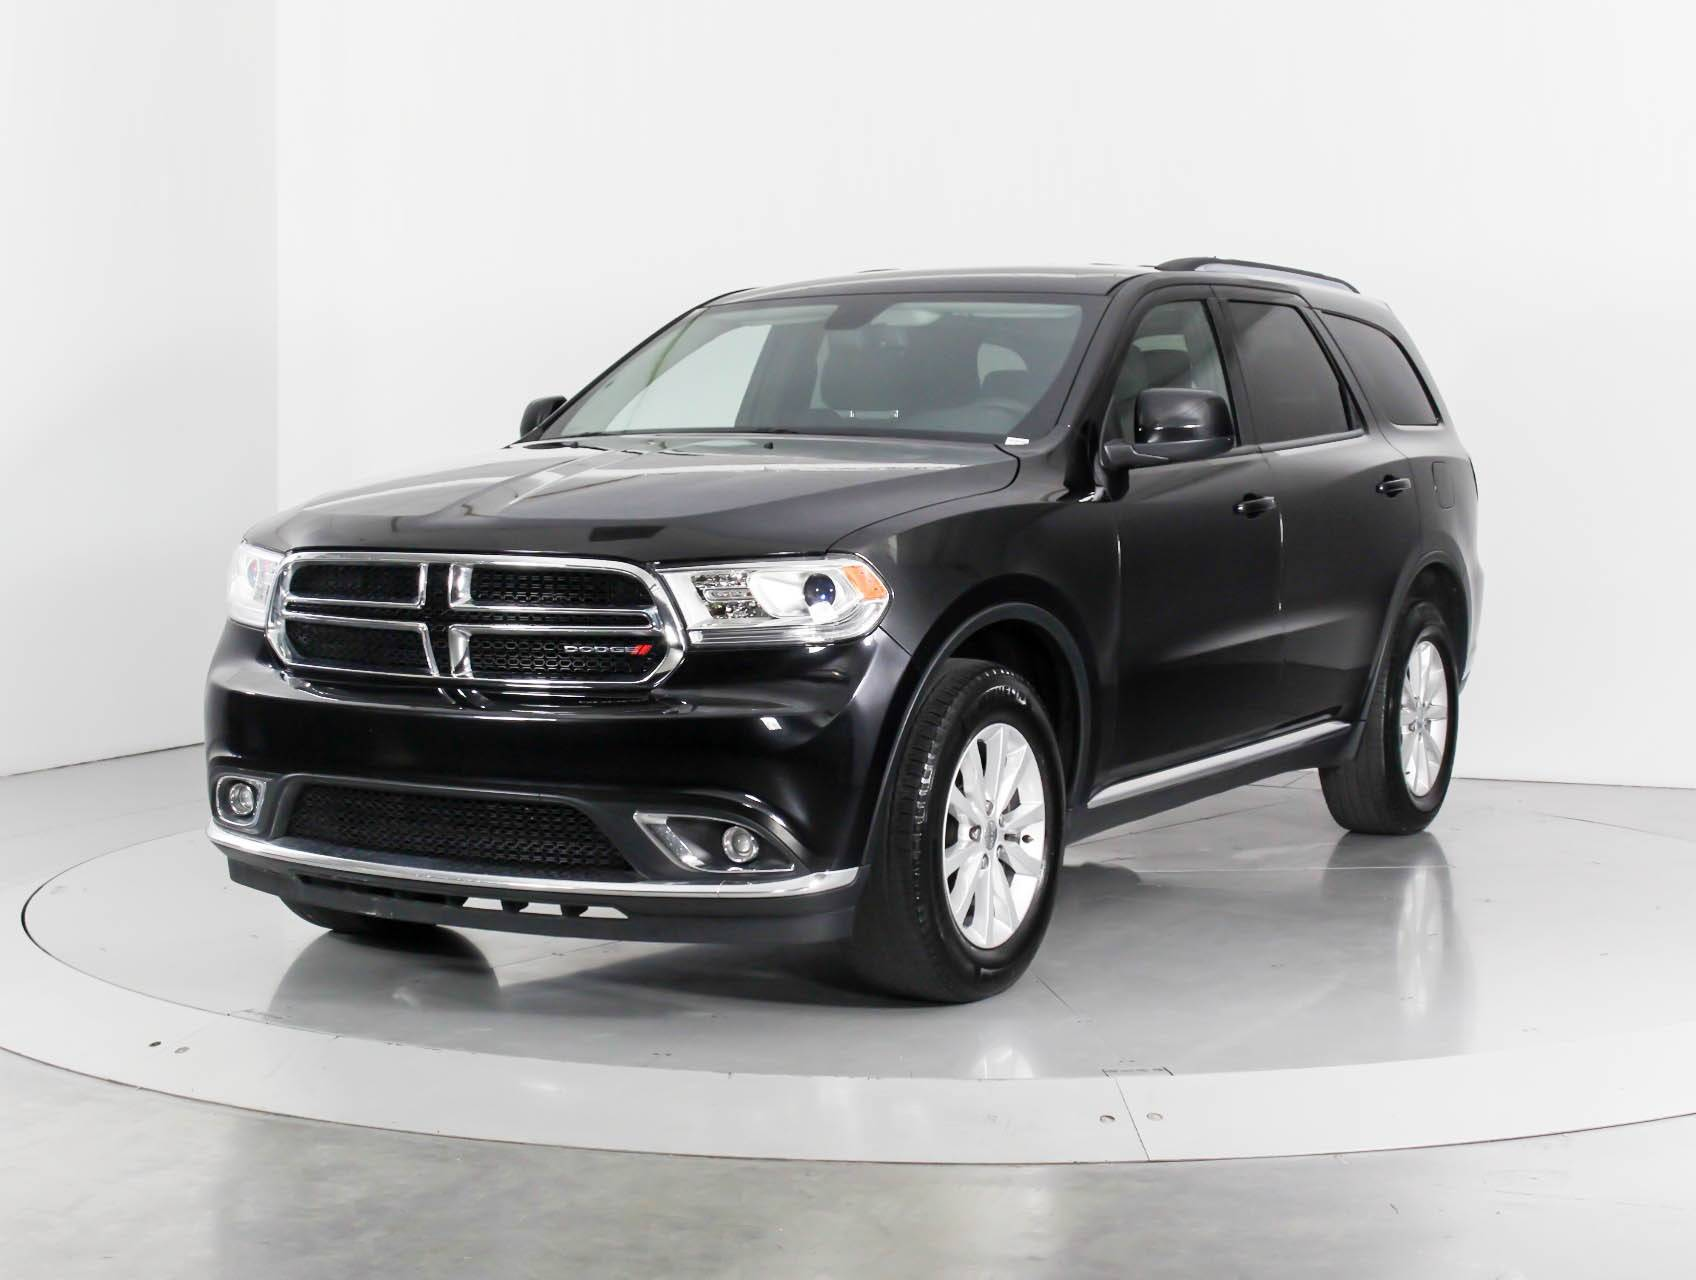 Used 2015 Dodge Durango Sxt Awd Suv For Sale In West Palm